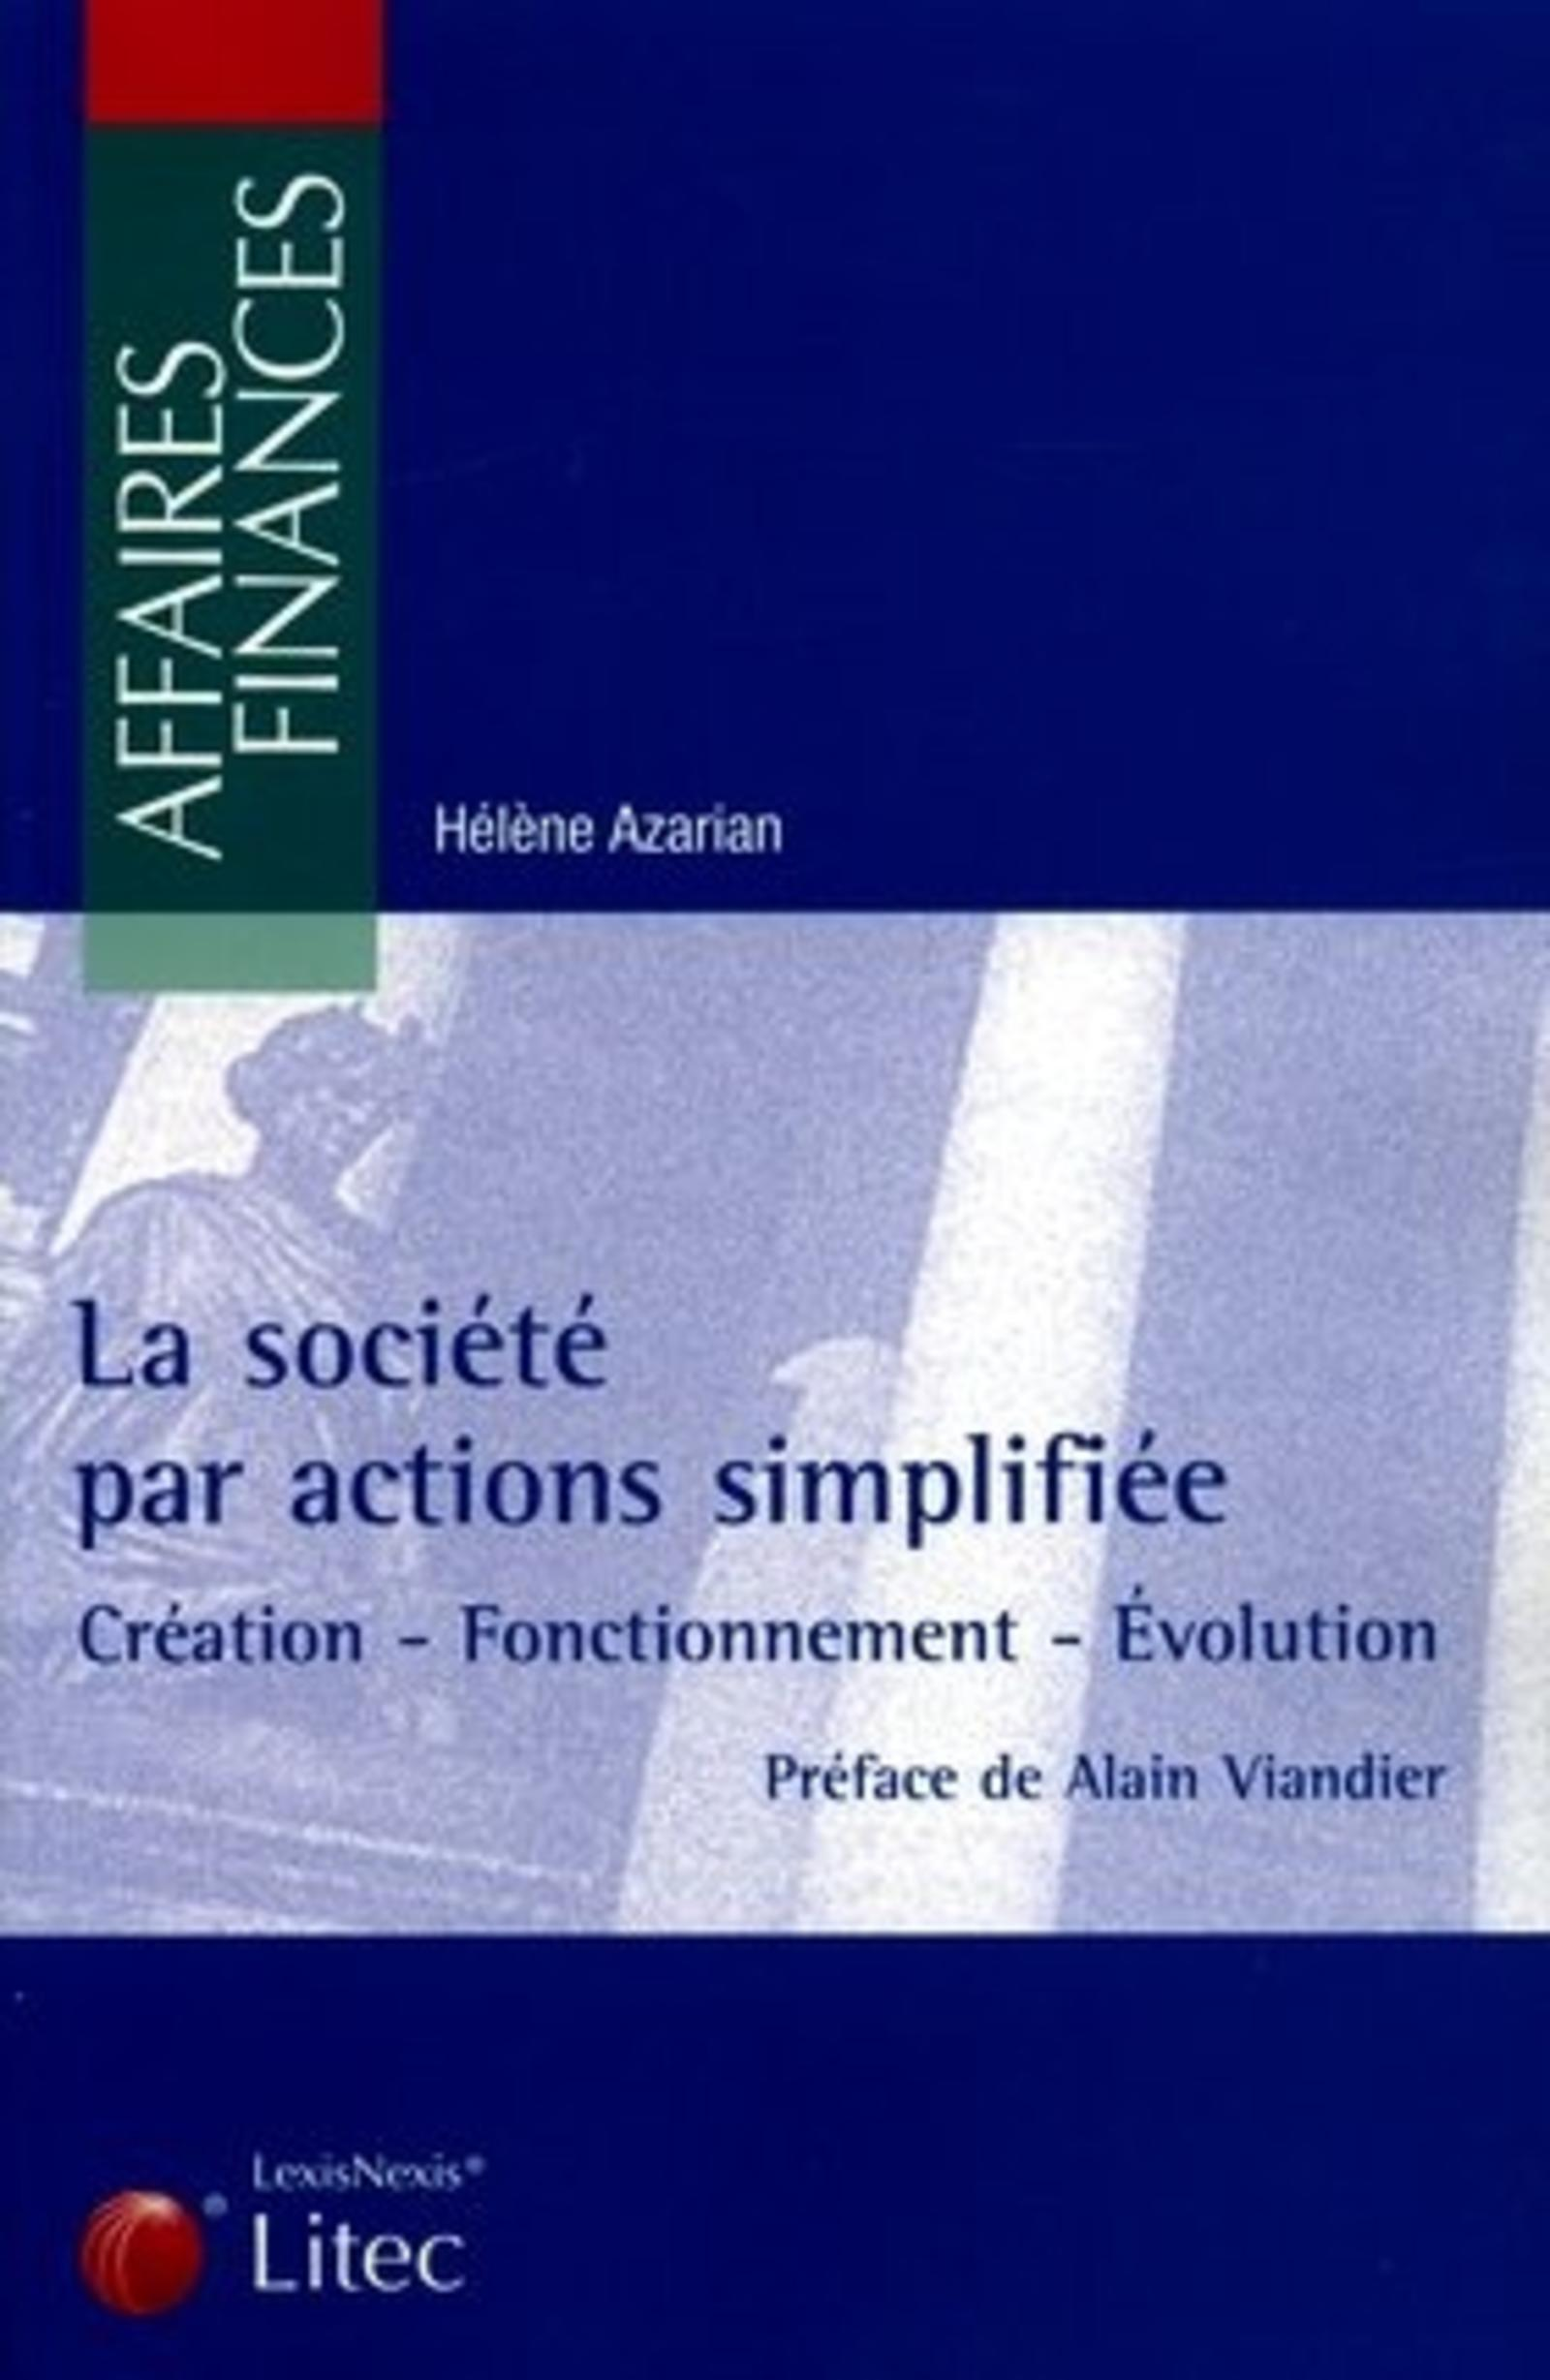 LA SOCIETE PAR ACTIONS SIMPLIFIEE CREATION, FONCTIONNEMENT, EVOLUTION